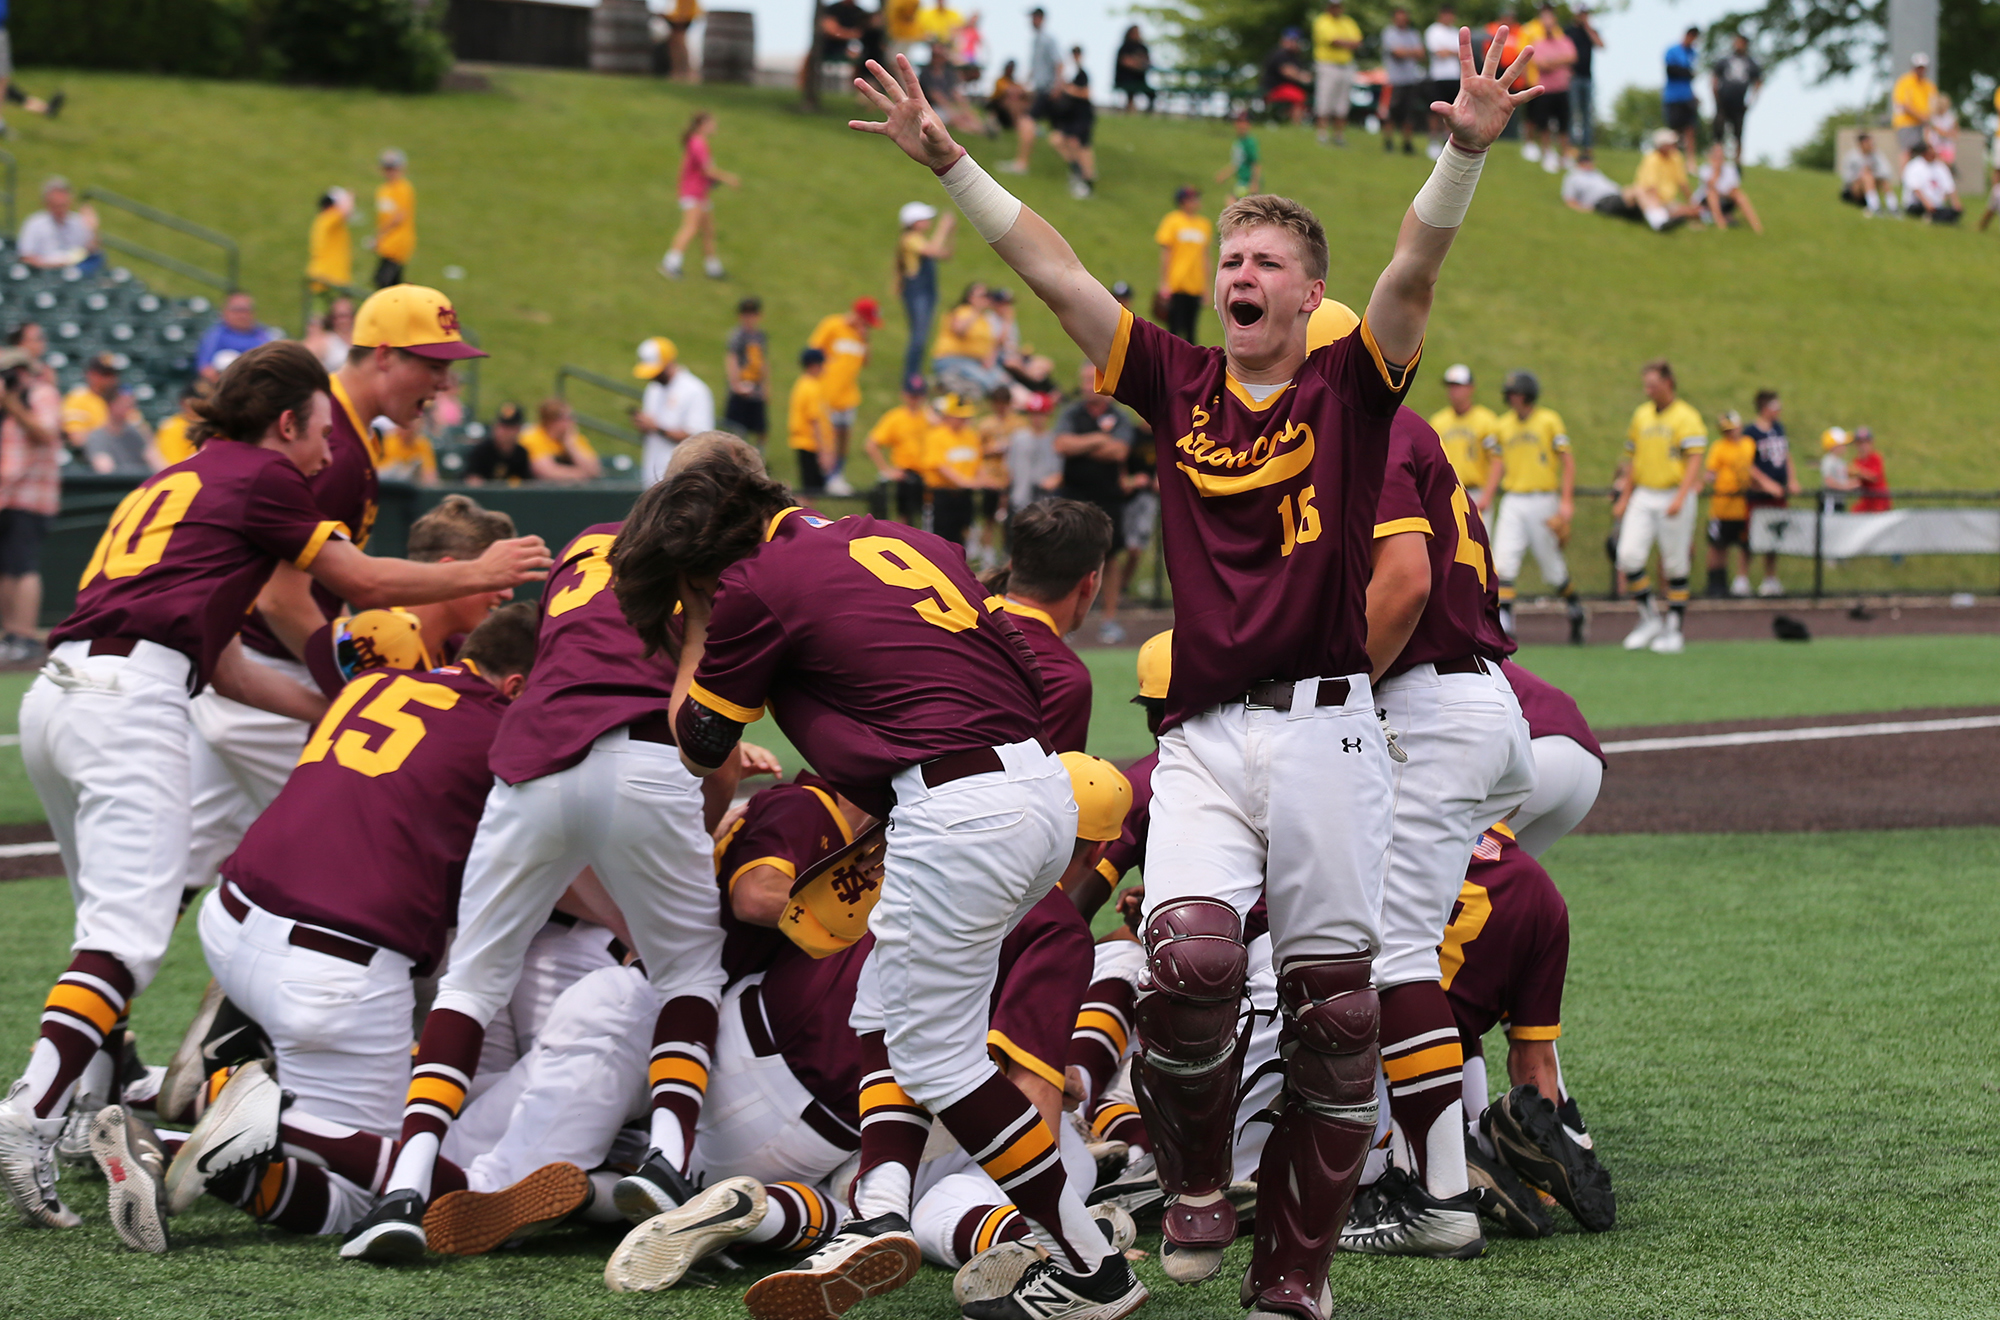 Montini's Nicholas Wind (16) and rest of the Broncos celebrate their 3A state championship at DuPage Medical Group Field in Joliet.